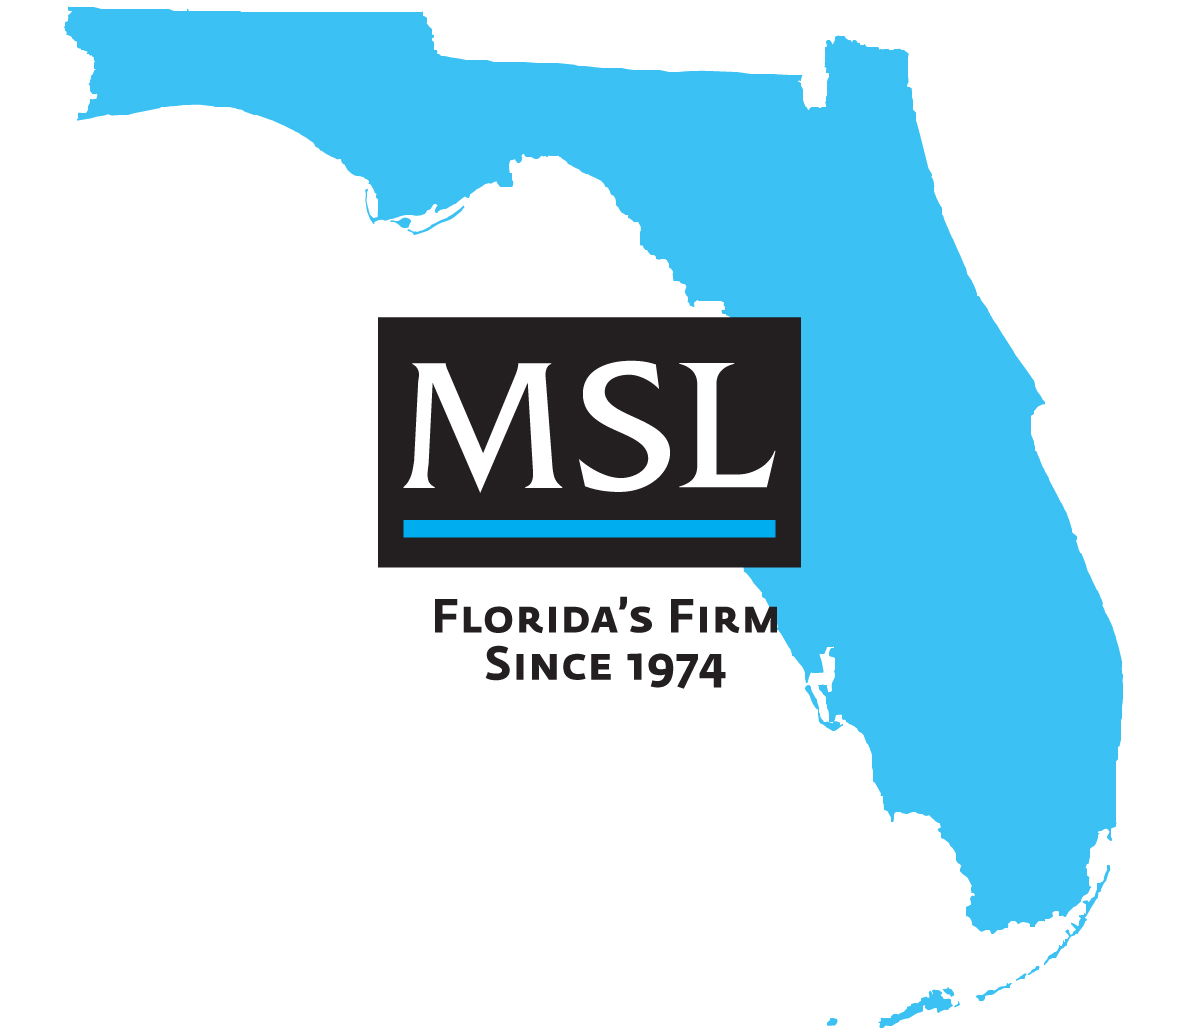 MSL CPAs Florida's Firm Since 1974